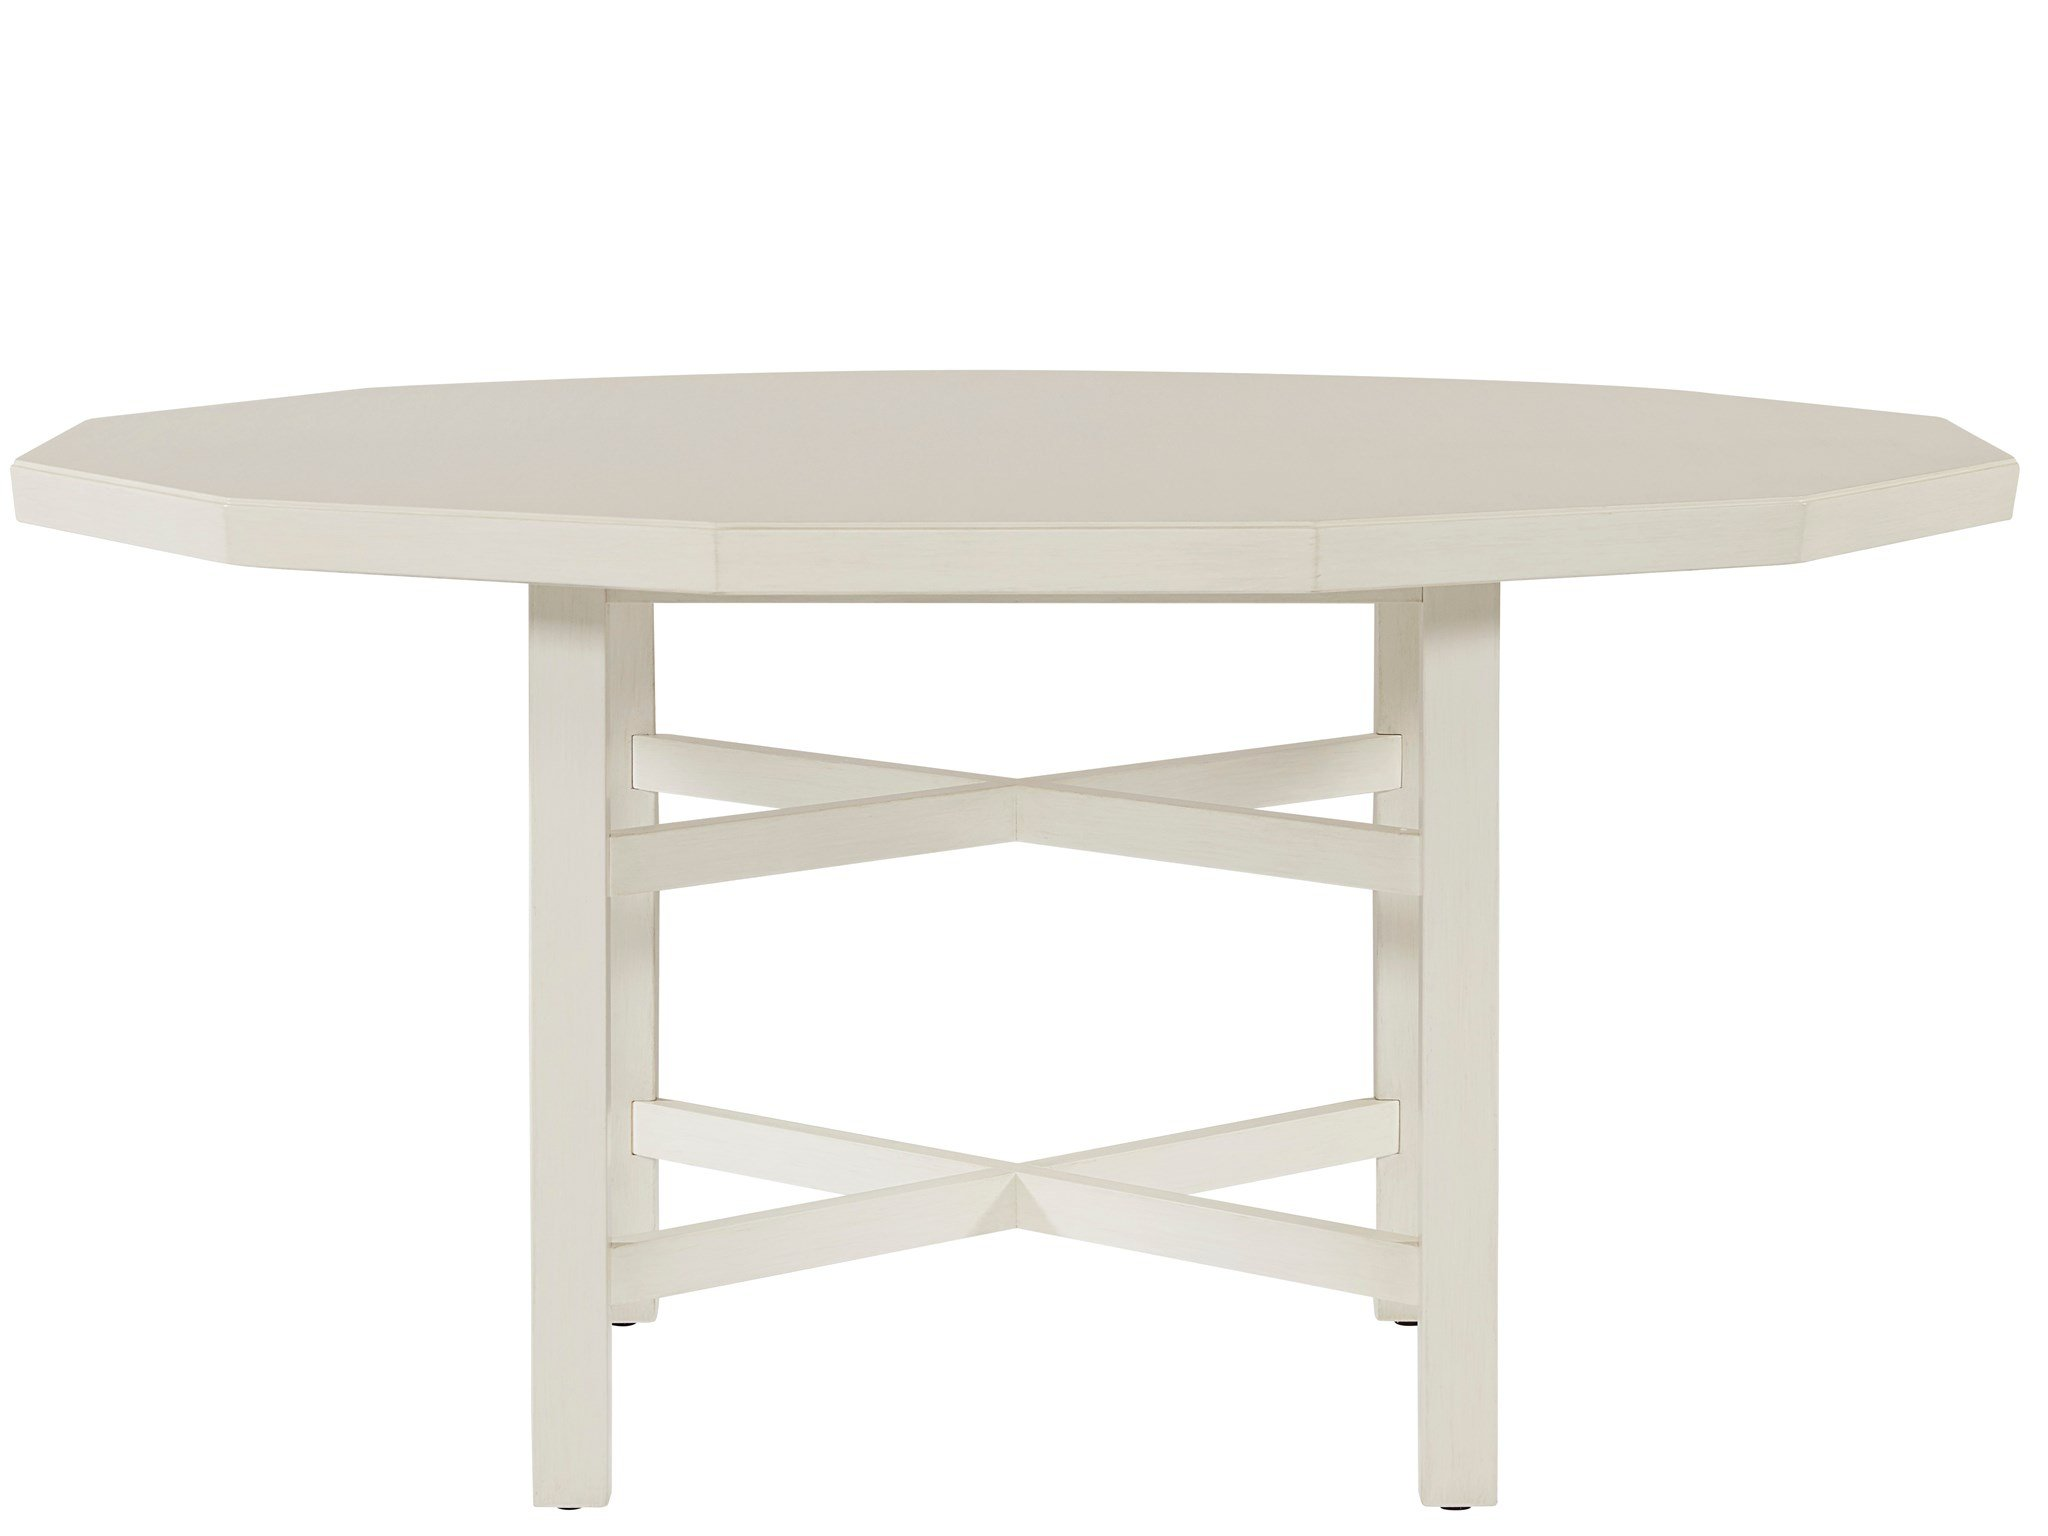 Grenada Round Dining Table